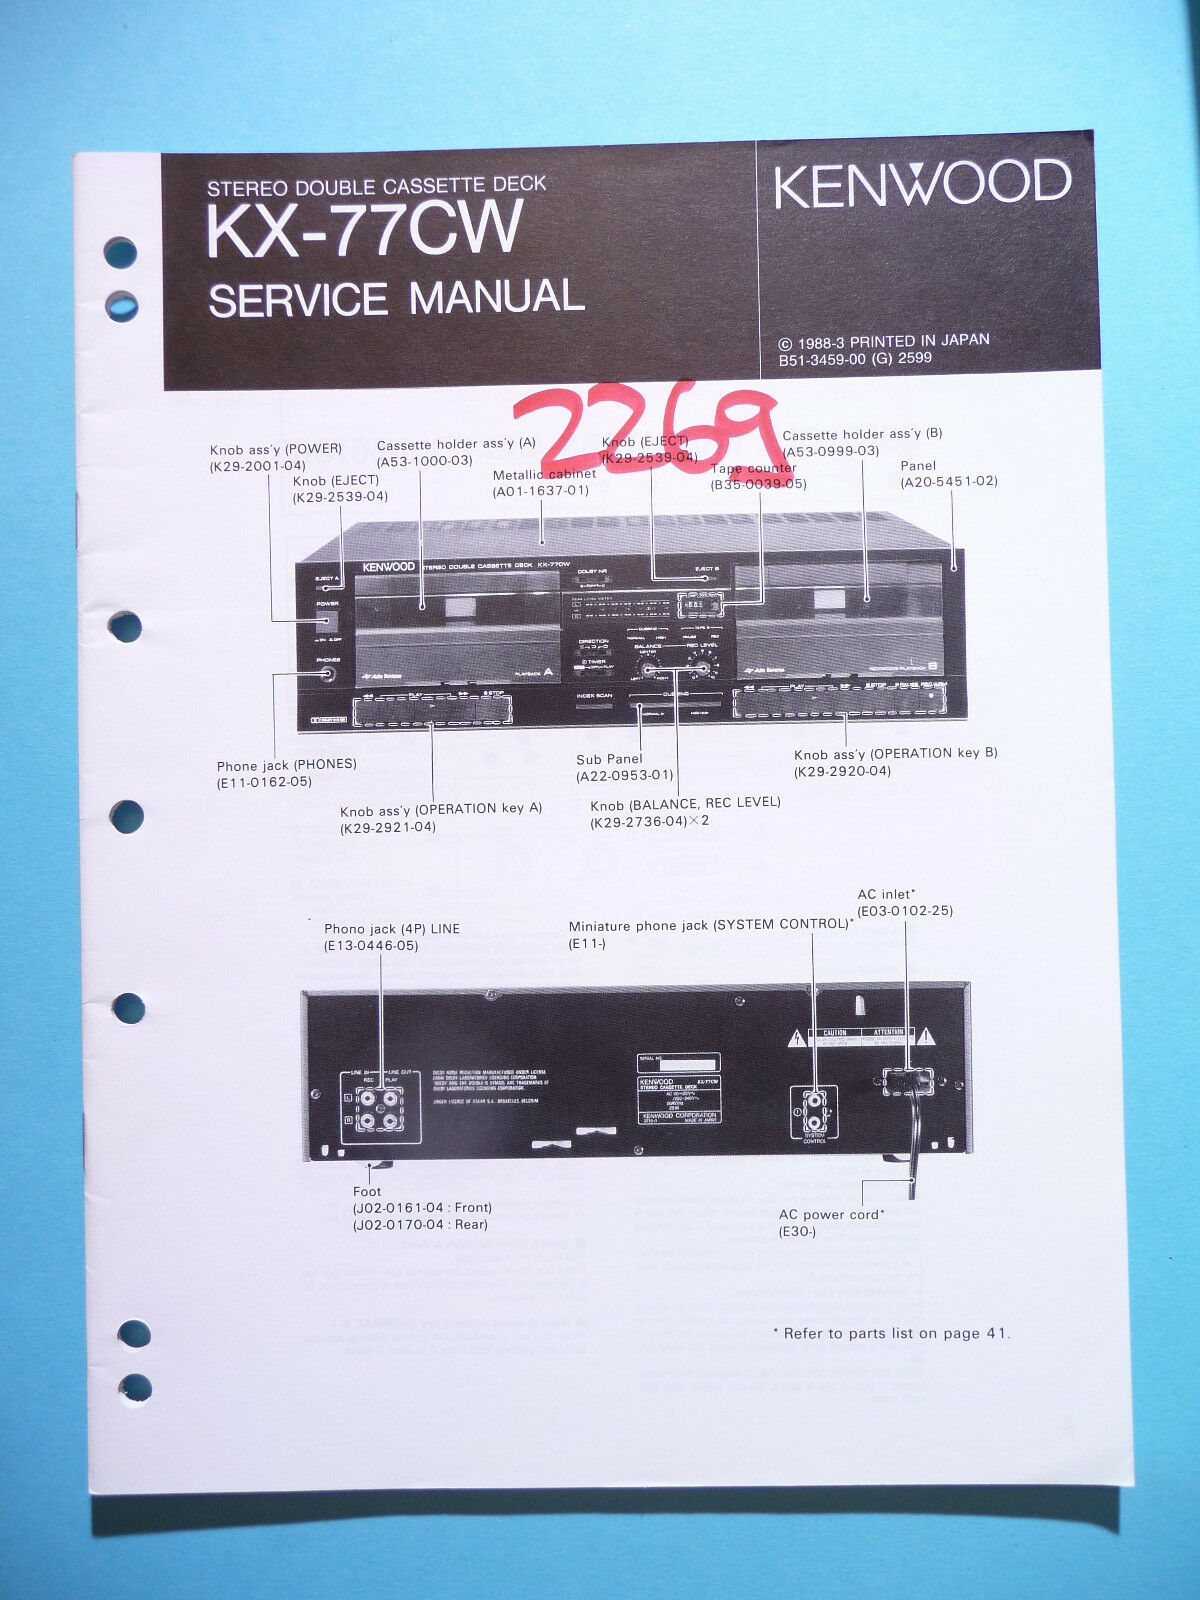 Service Manual Instructions For Kenwood KX-77CW ,ORIGINAL 1 of 1Only 1  available ...